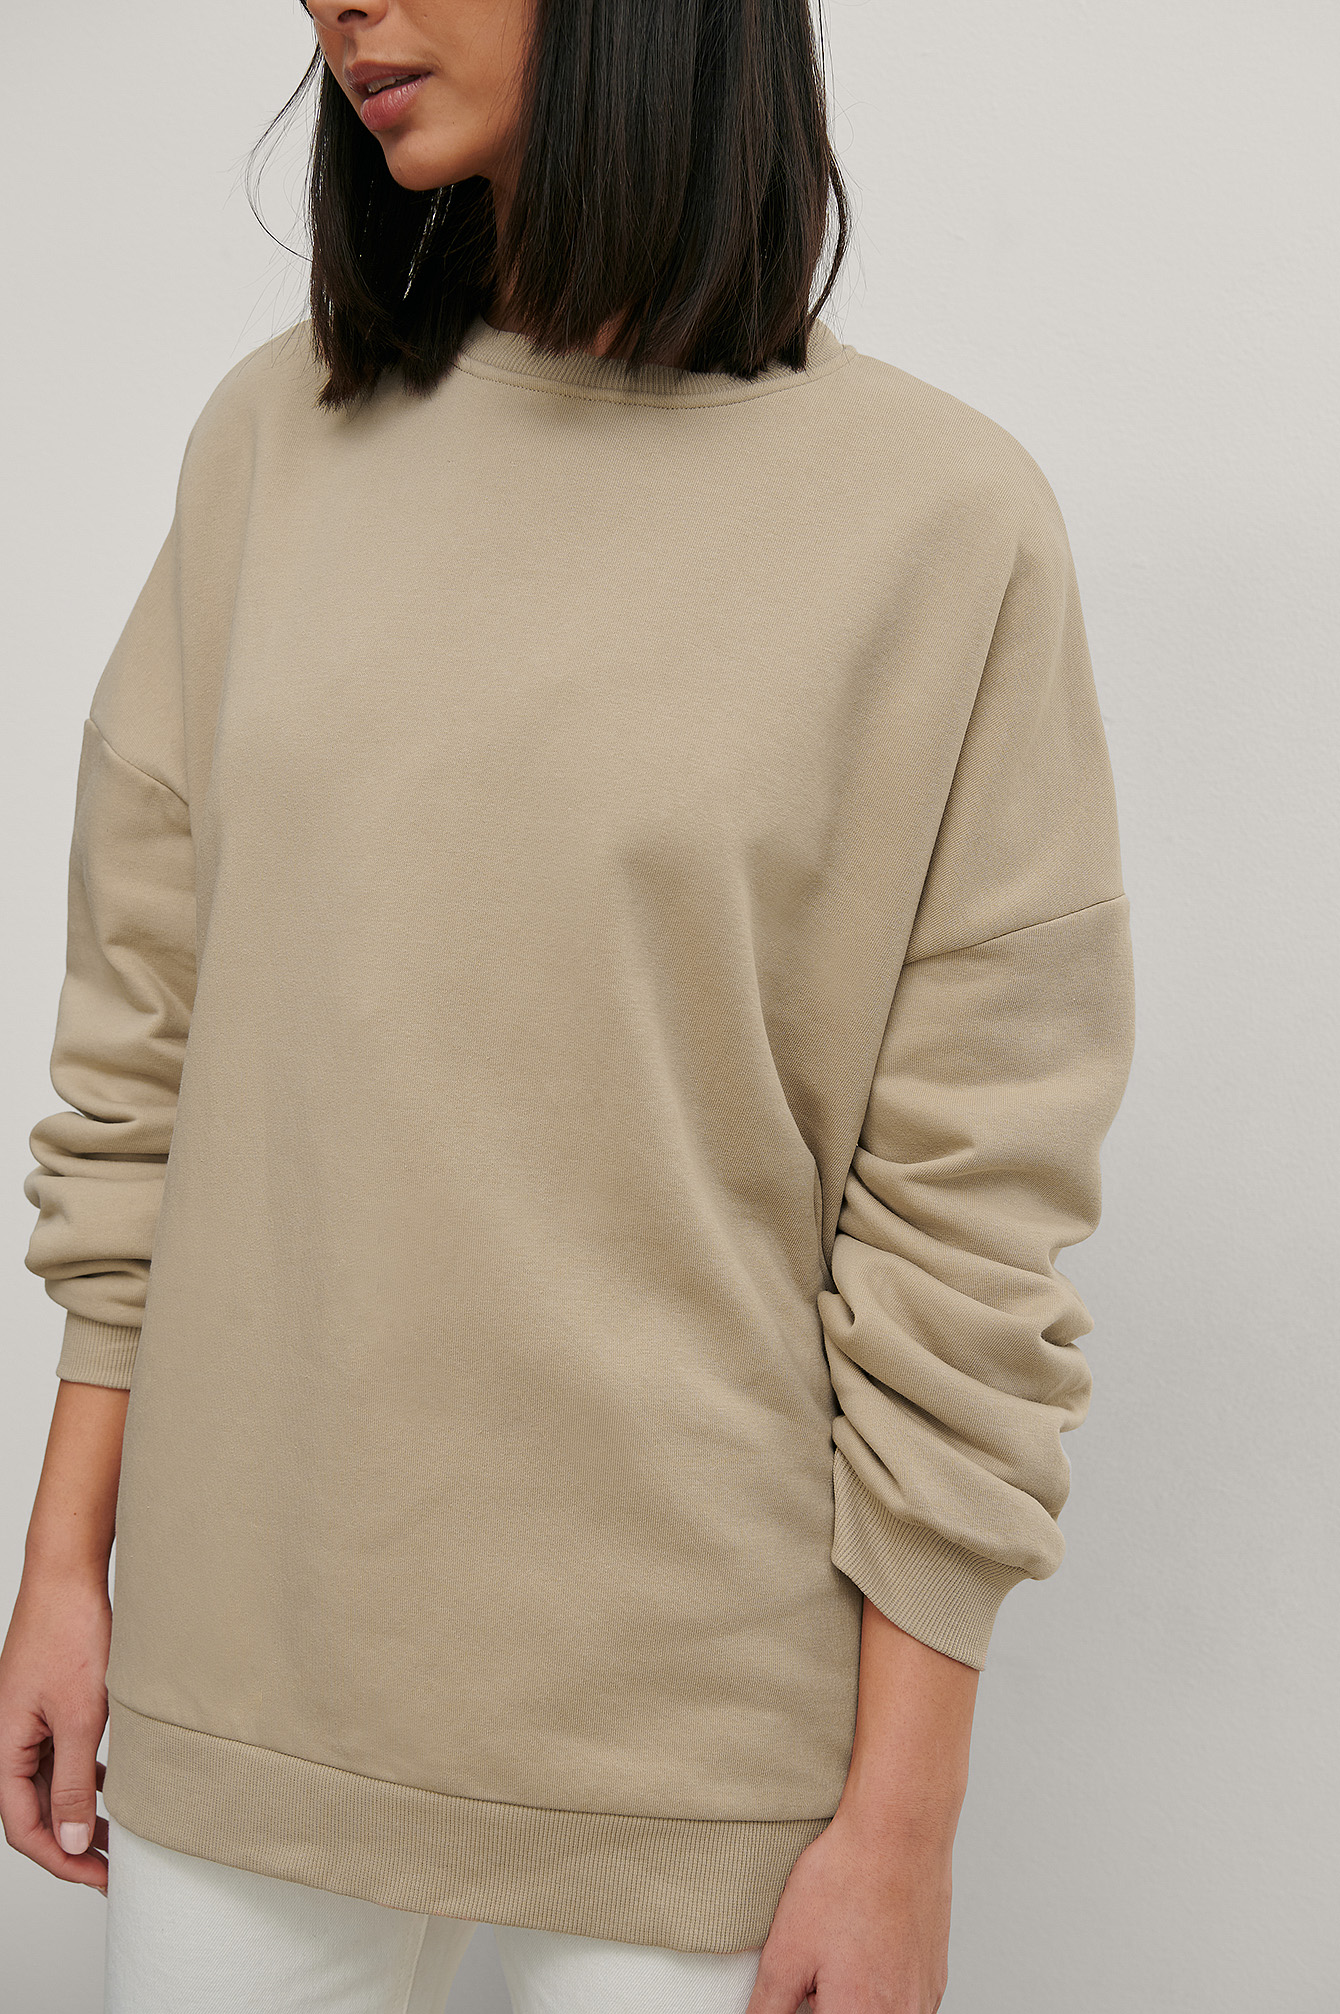 Beige Organic Oversized Sweater